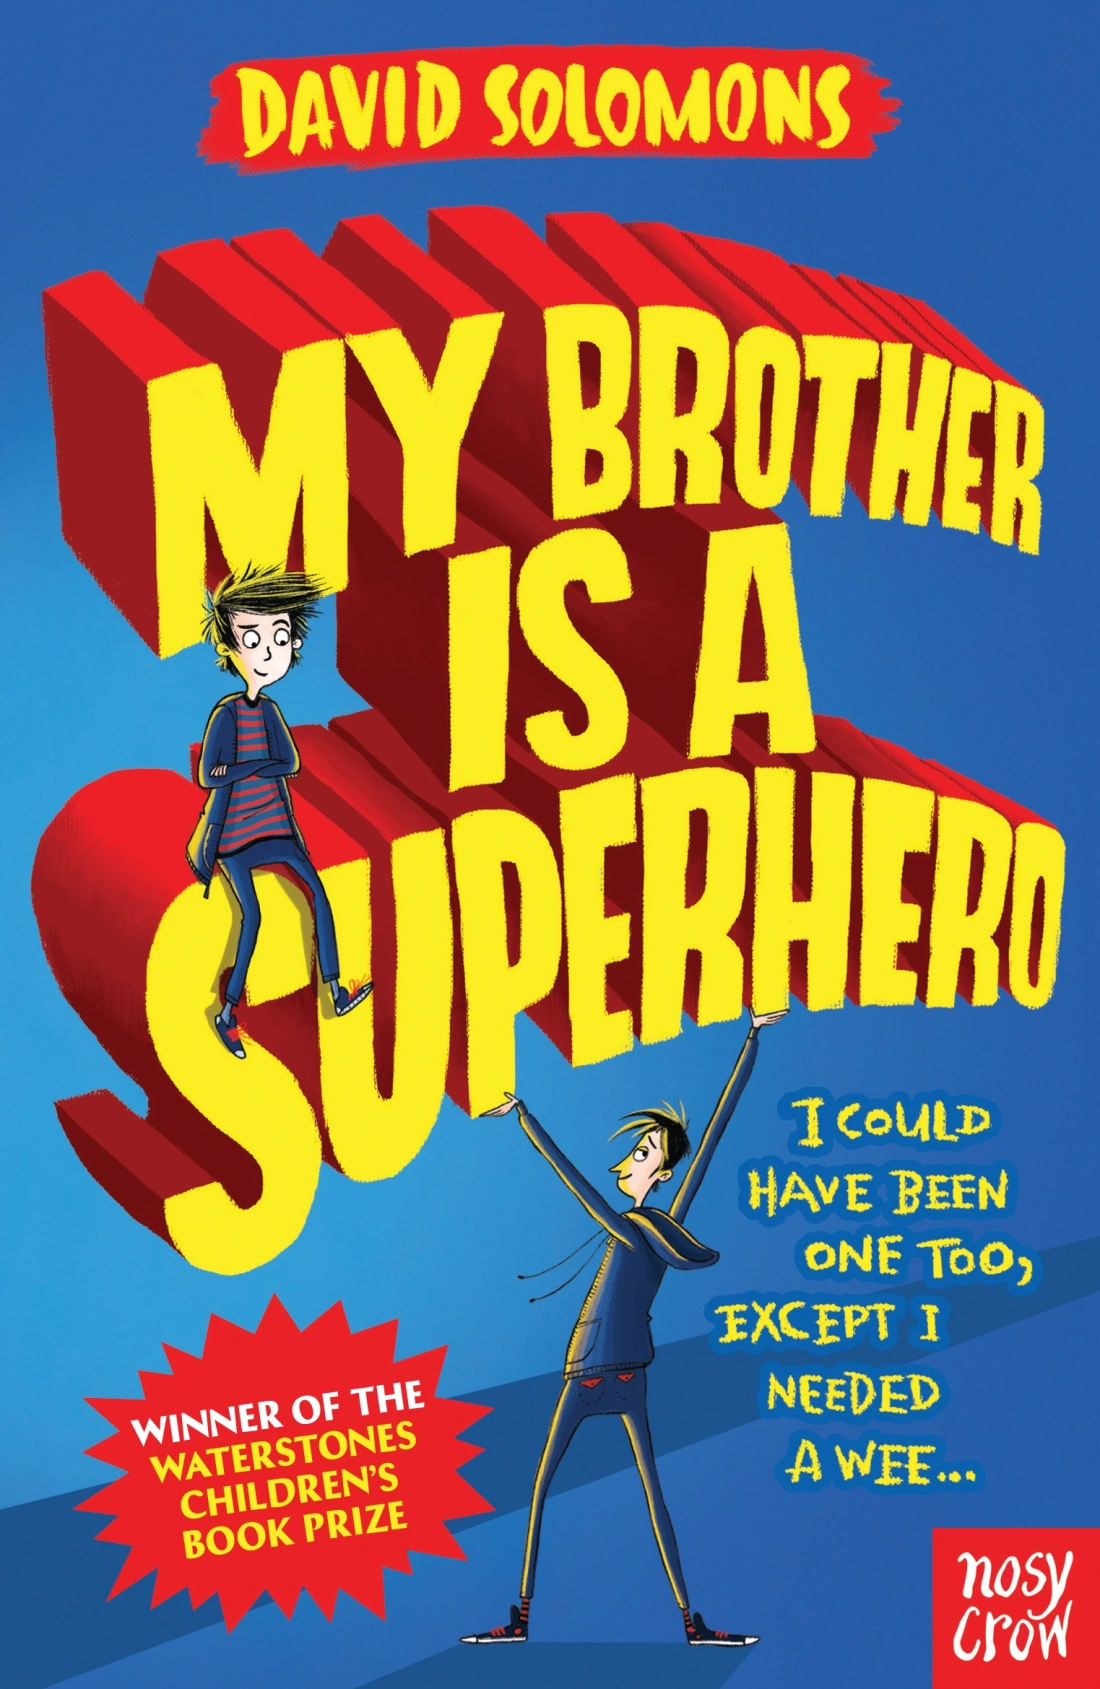 My-Brother-Is-a-Superhero-68851-3mmmjf.jpg